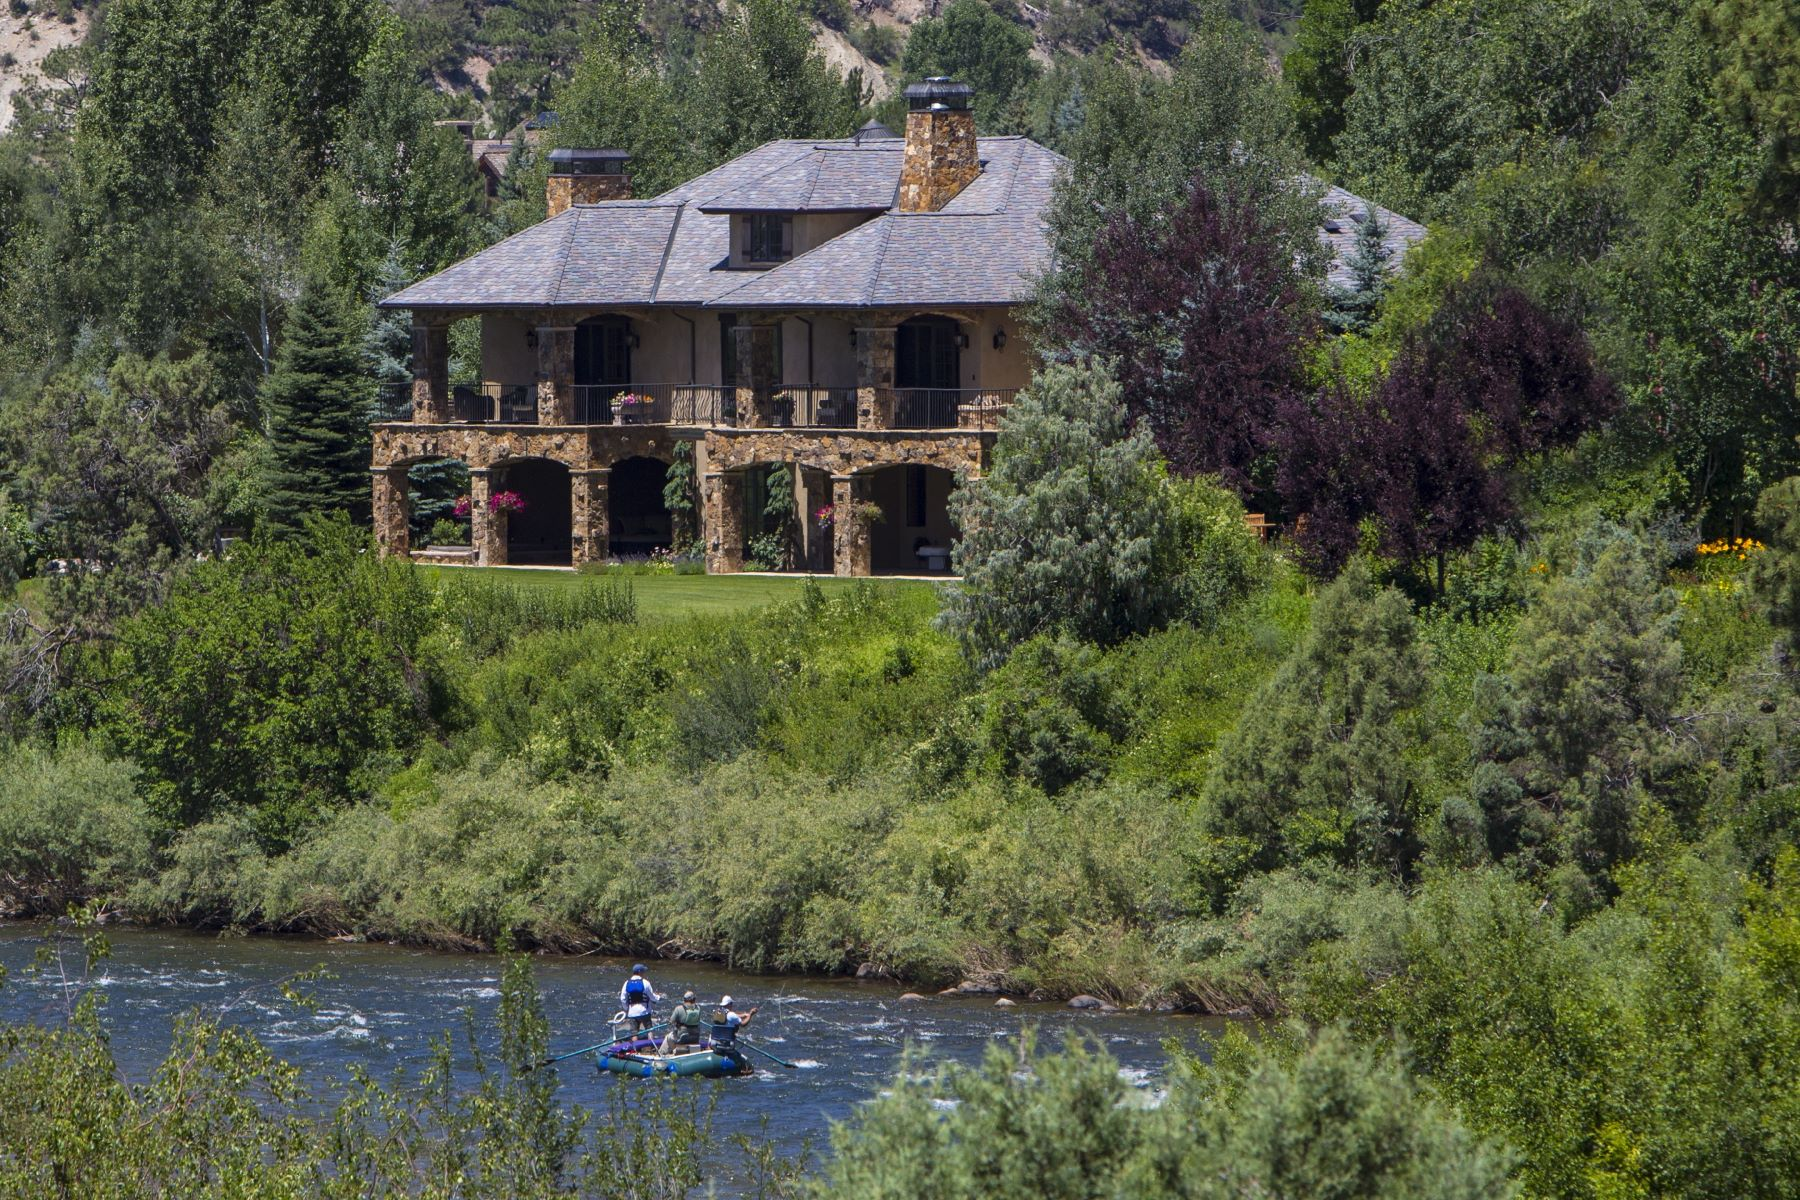 Single Family Home for Active at Riverfront Italian Country Home 80 Alpen Glo Lane Carbondale, Colorado 81623 United States